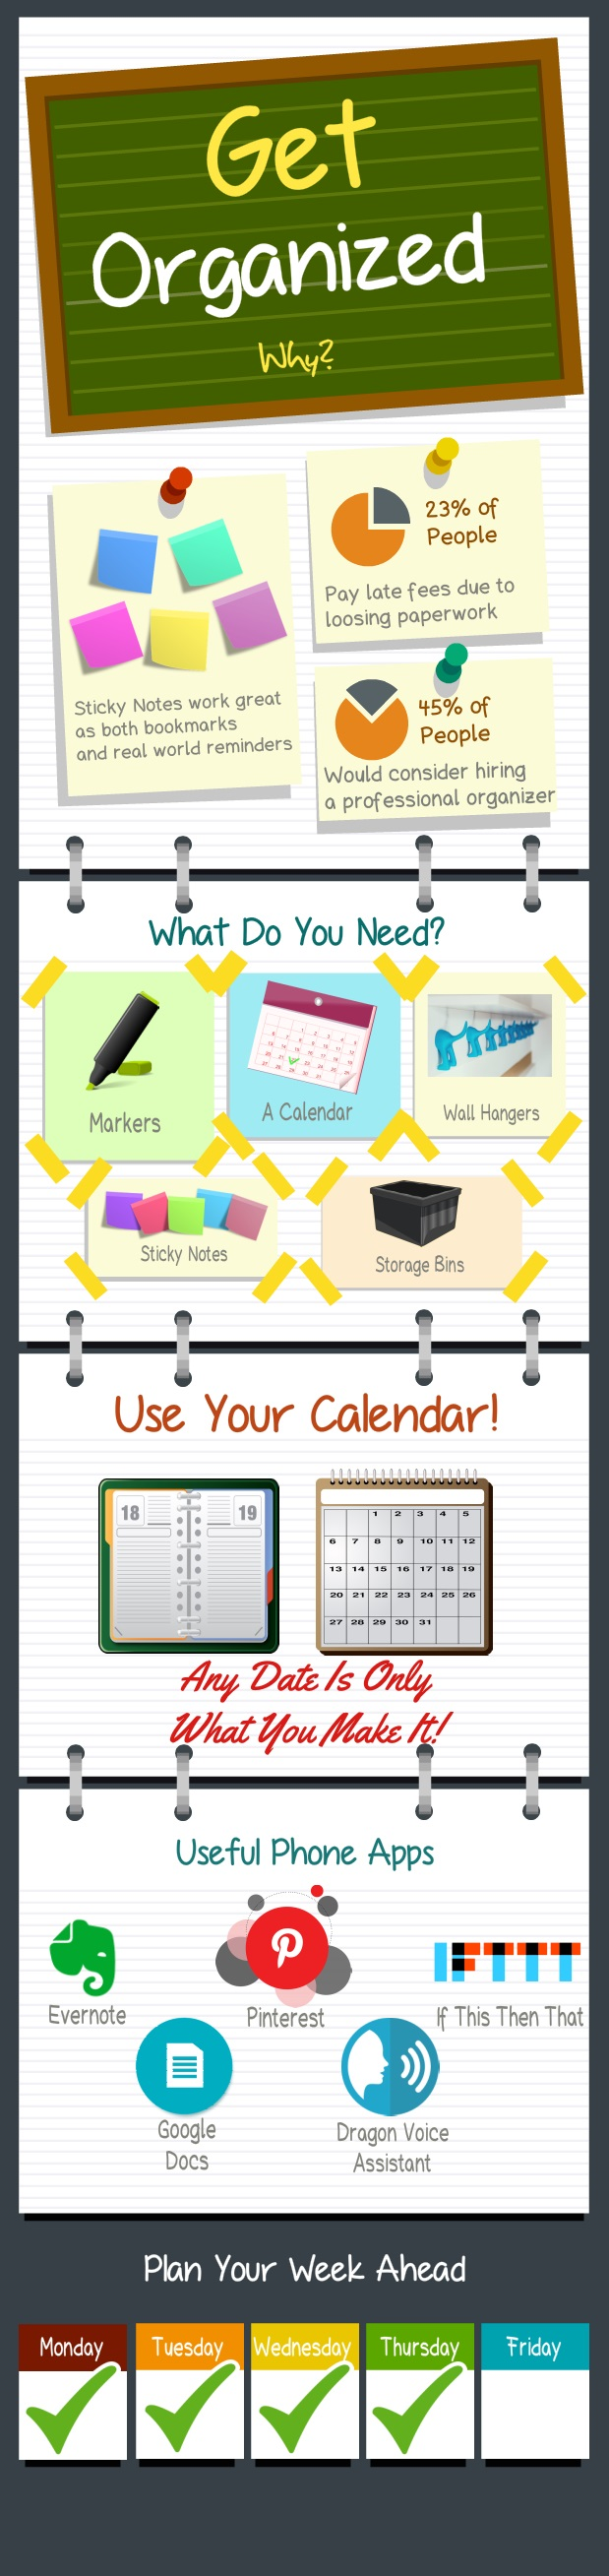 get organized tips infographic